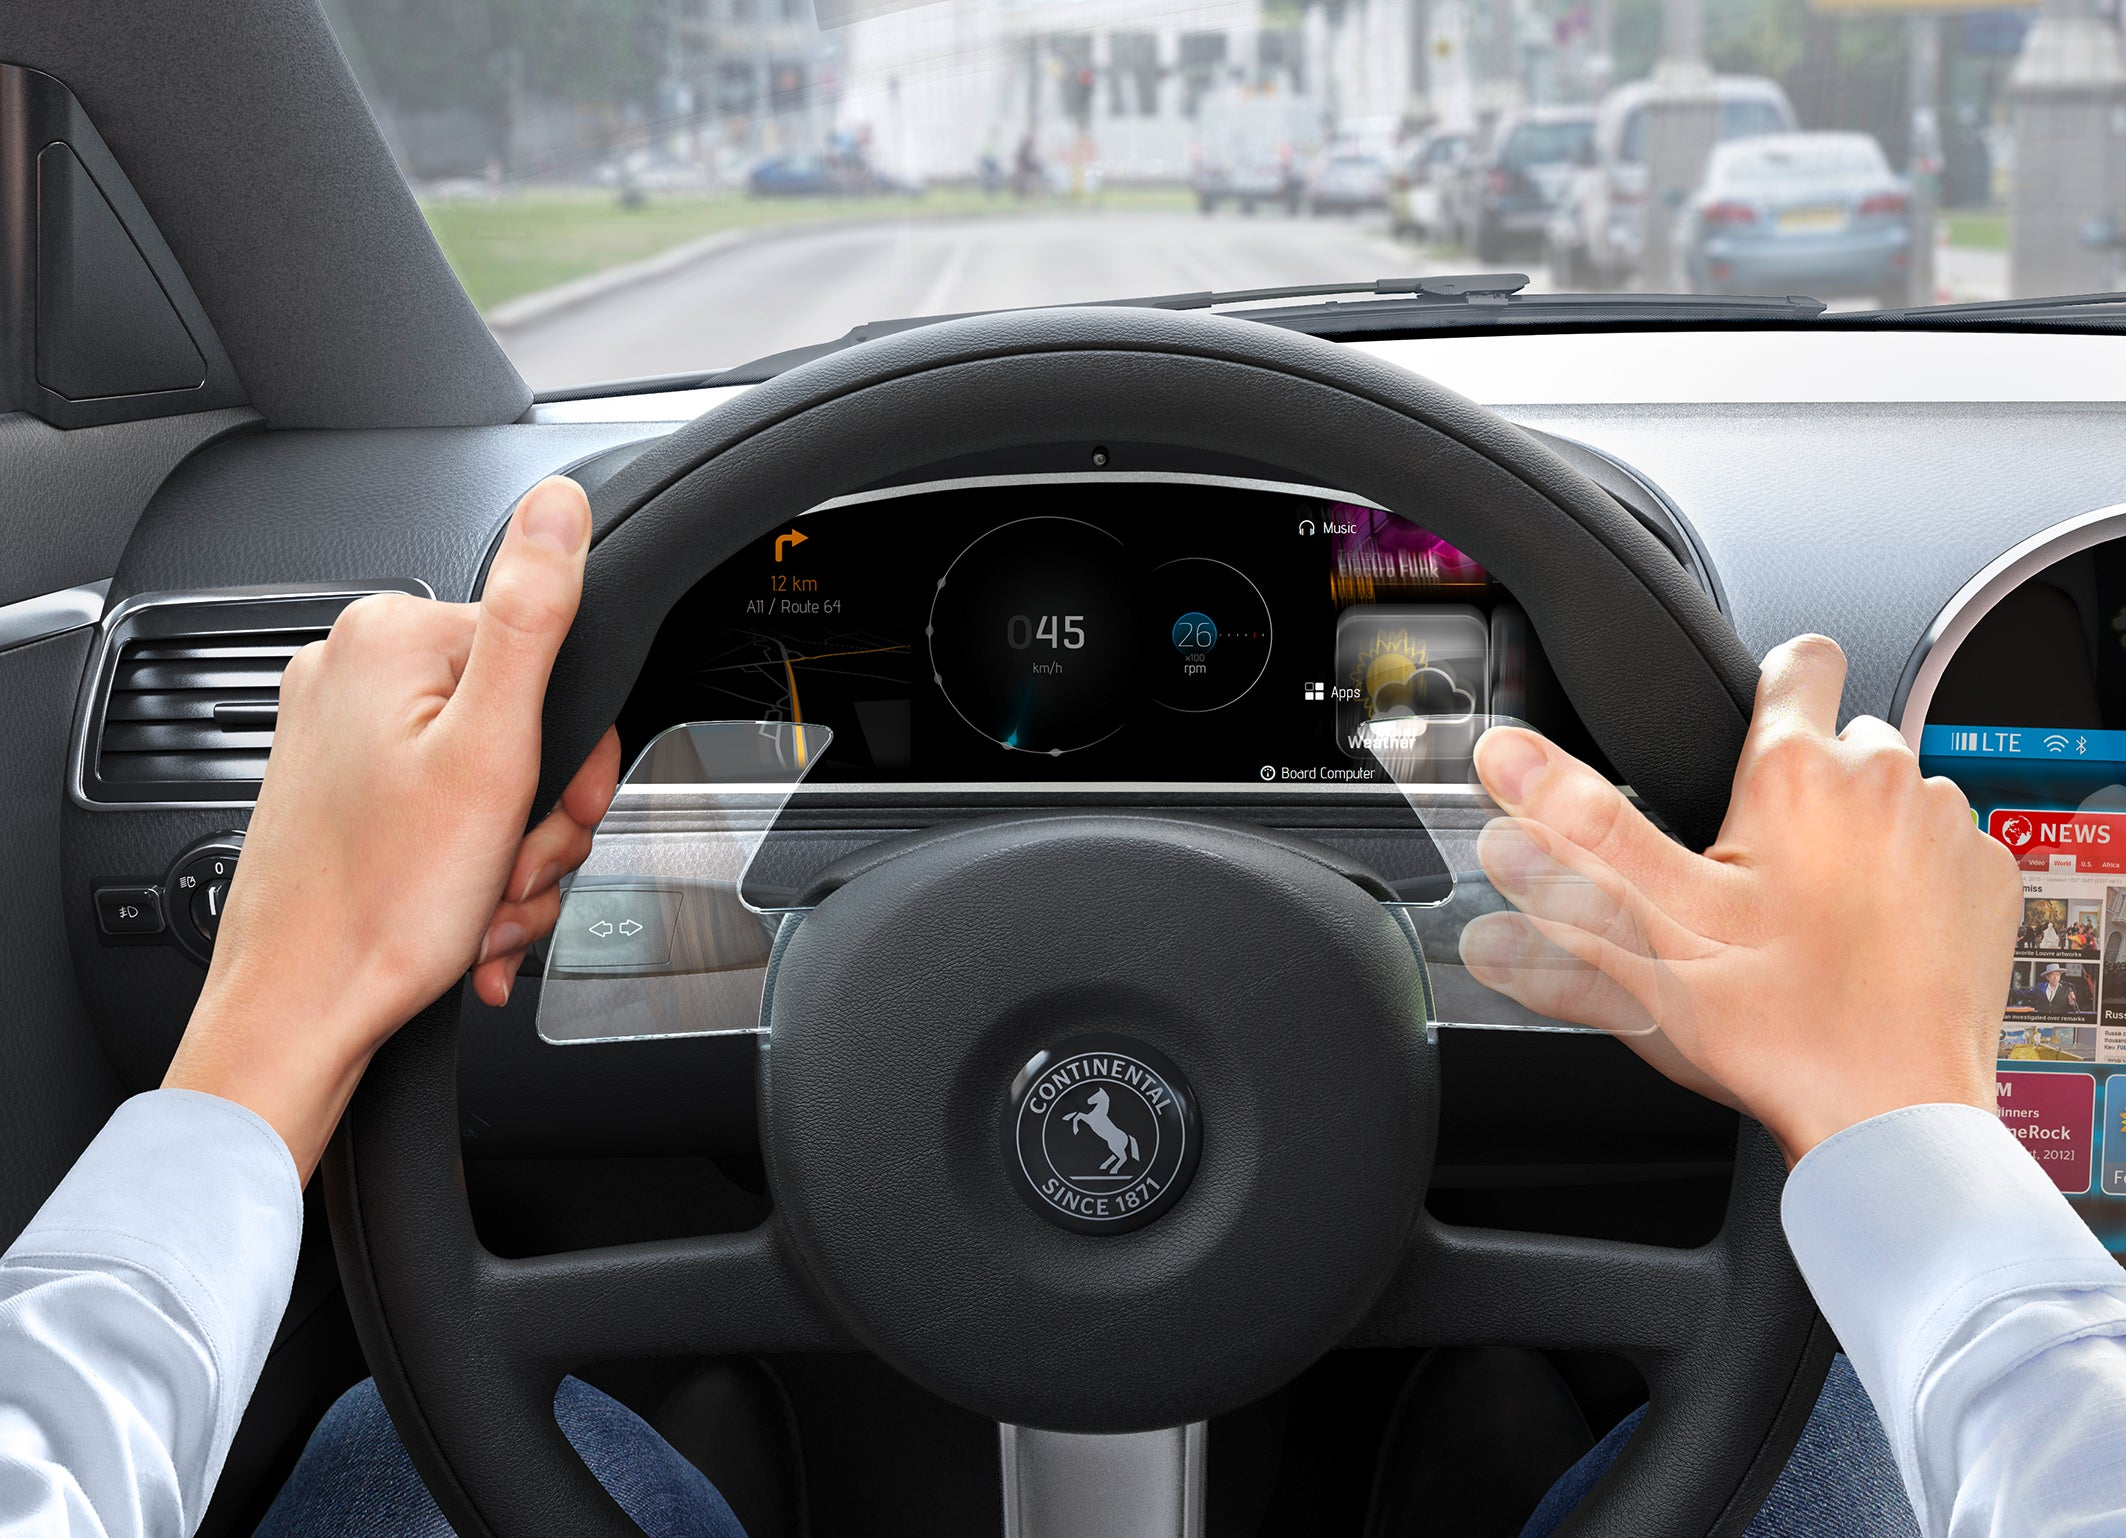 Continental Upgrades the Steering Wheel in One Swipe